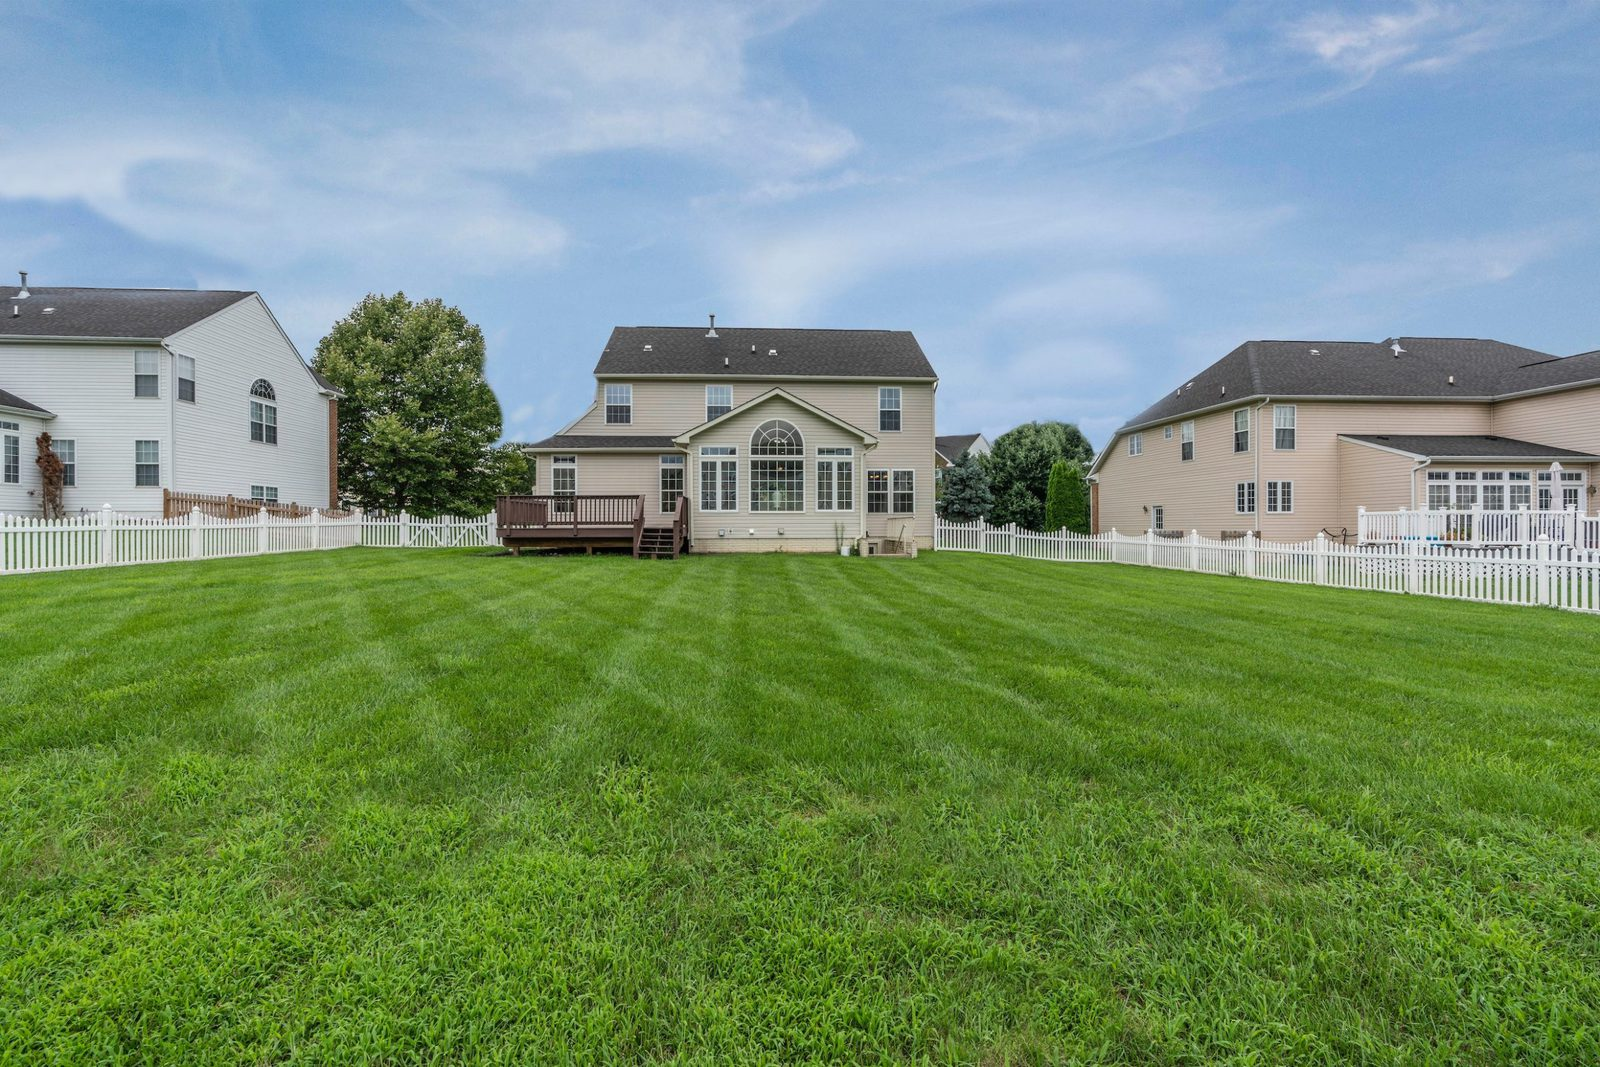 Before You Build Top 5 Things To Consider When Relocating To Northern Virginia